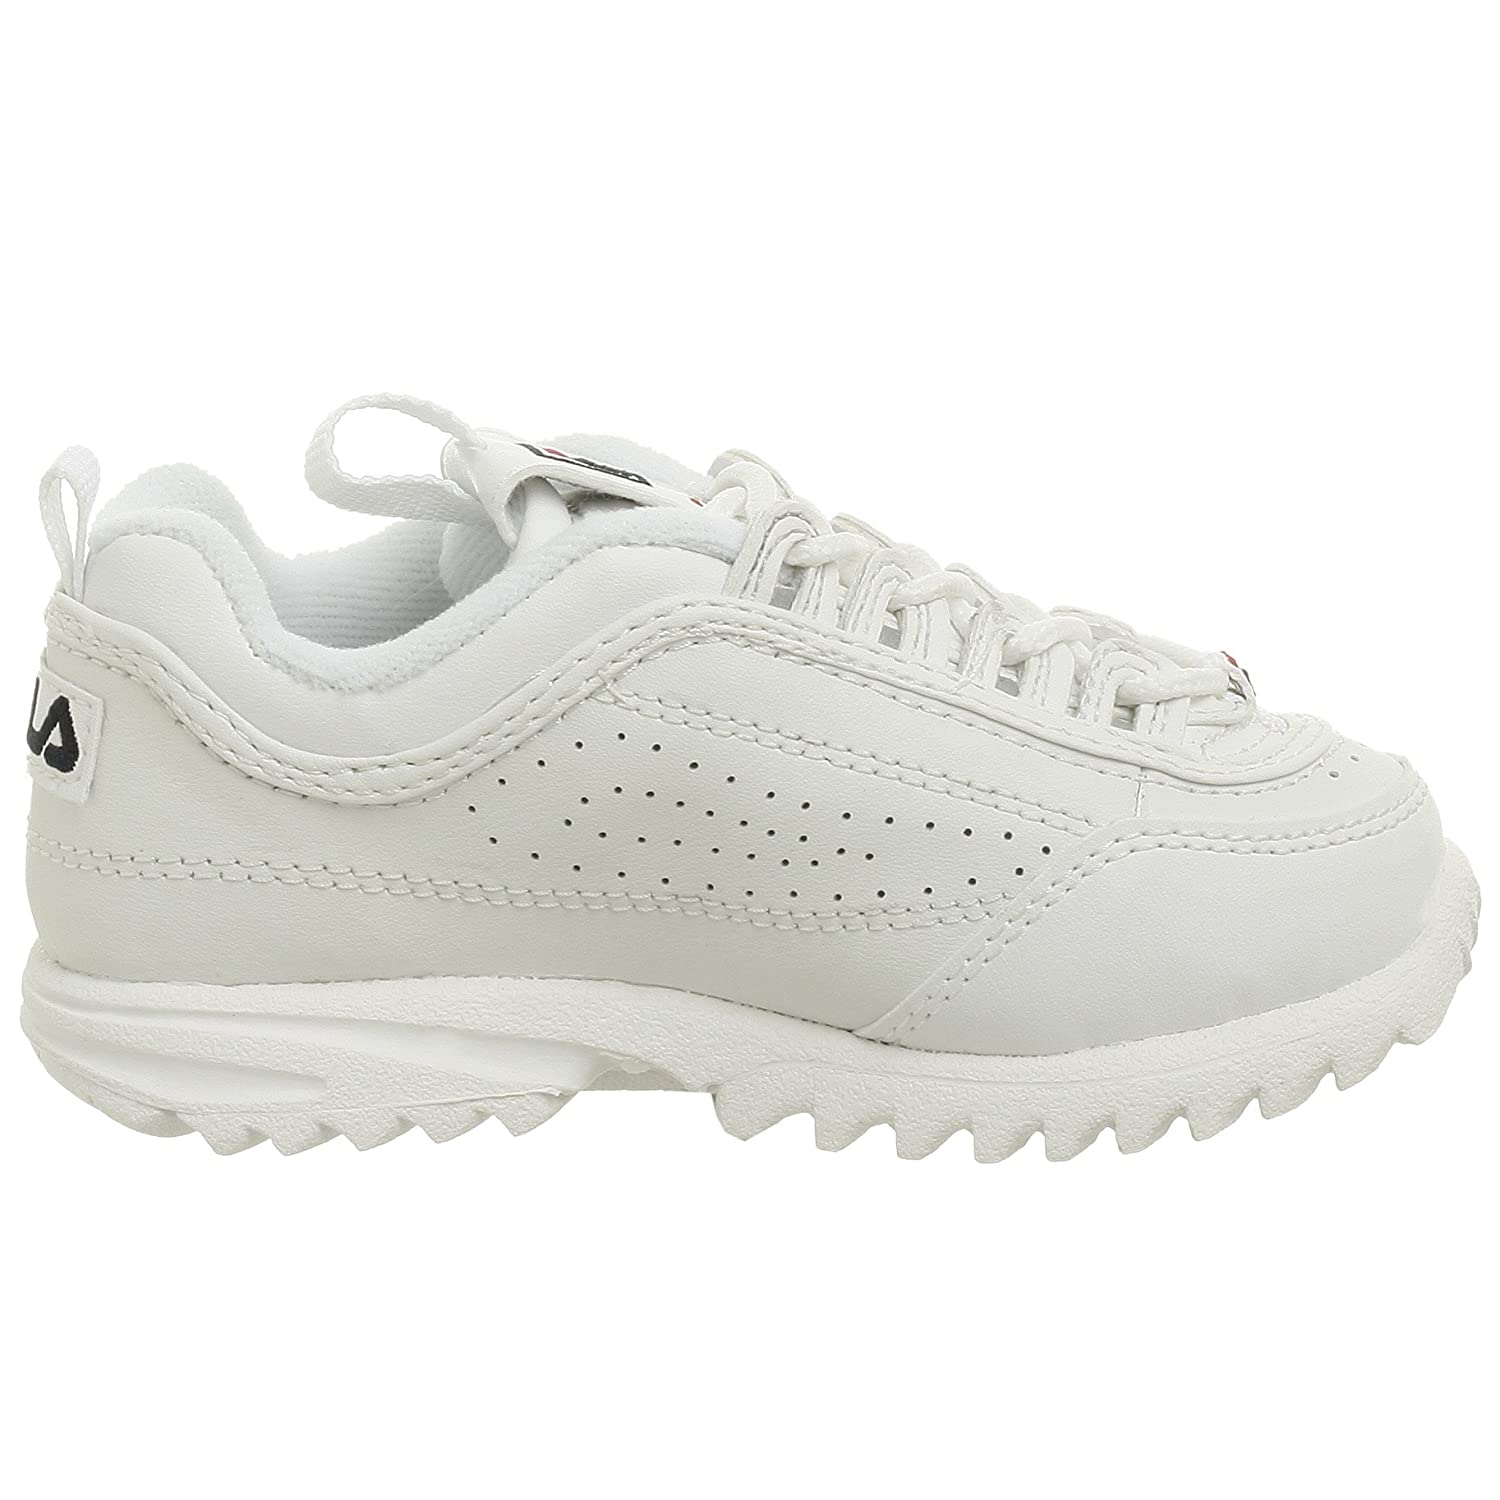 QsvMo Tennis Child Shallow Casual Shoes Cool Sneaker